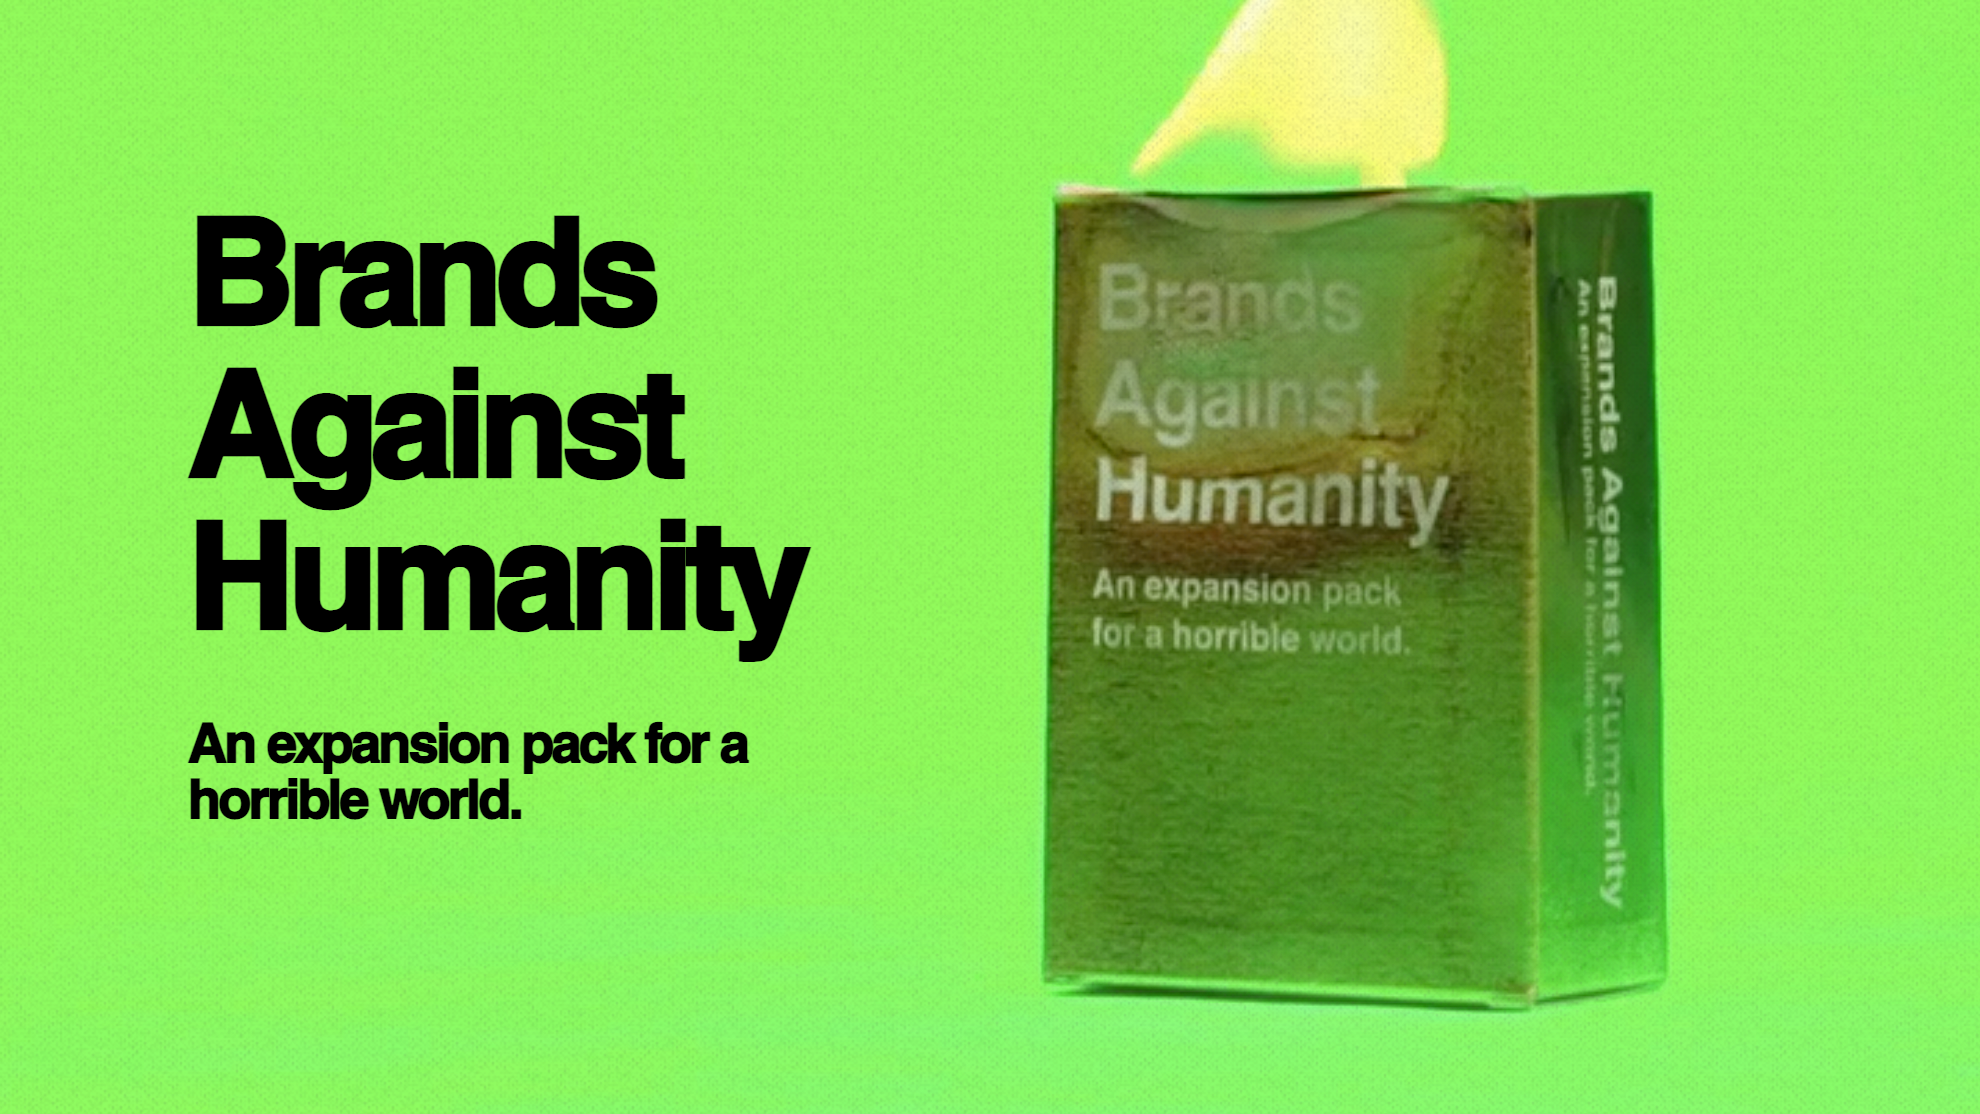 Brands Against Humanity: The Card Game Calling Out Brands' Dirty Deeds